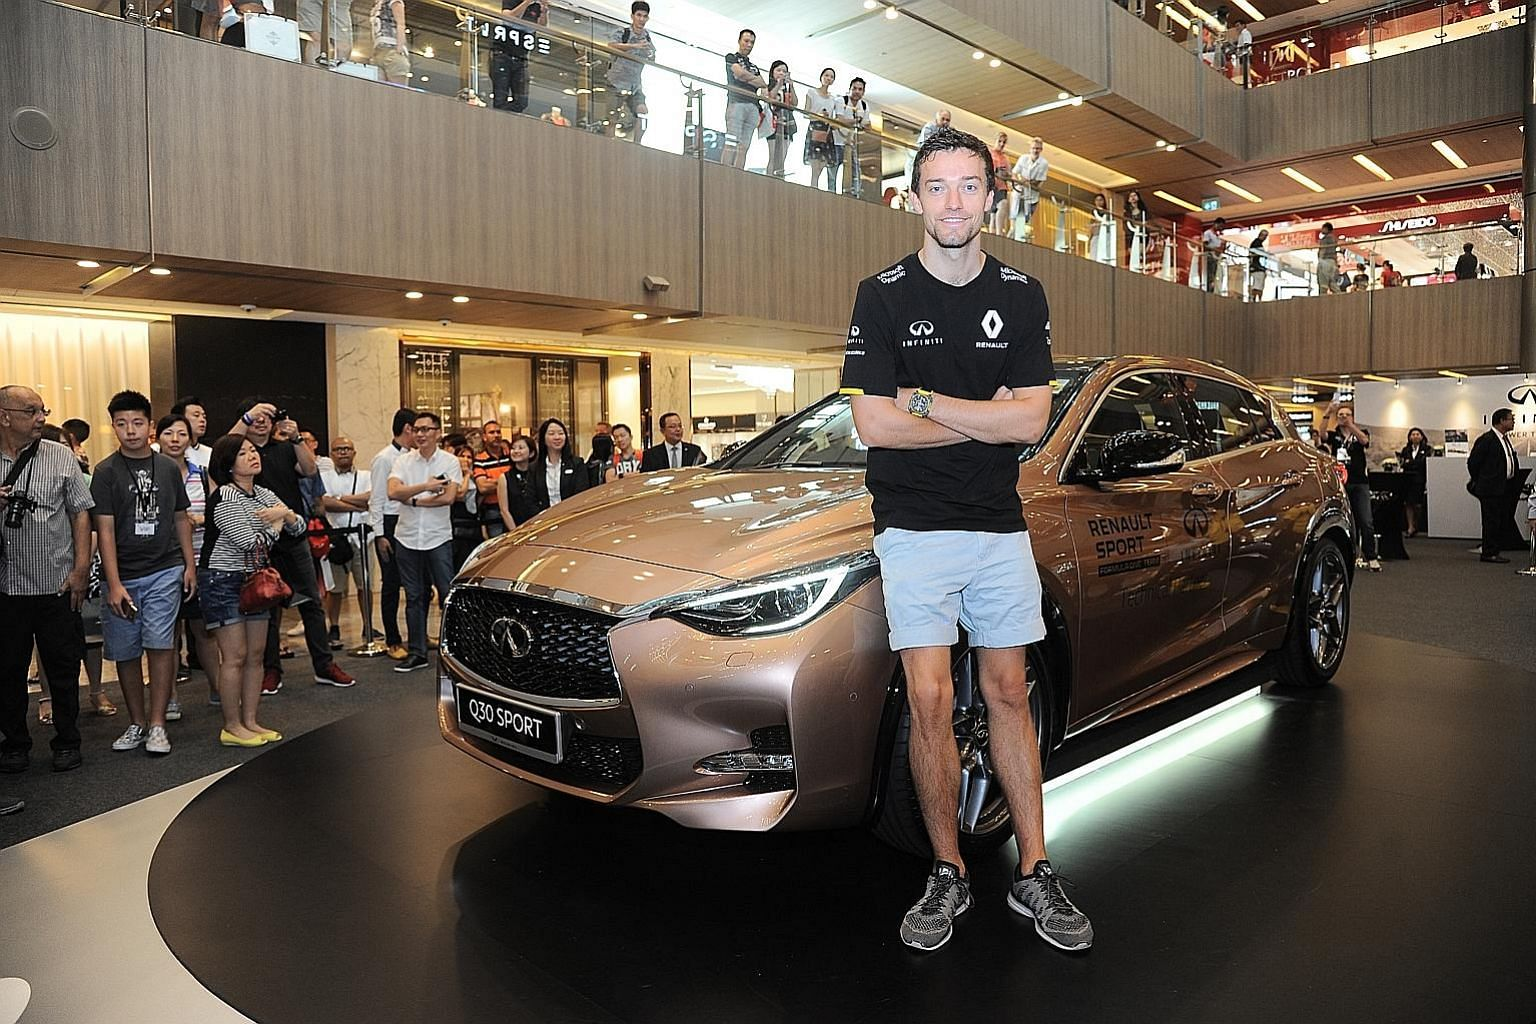 Renault's Jolyon Palmer with the newly launched Infiniti Q30 at a roadshow at Paragon. Having driven and now raced at the highest level, the Briton aims to one day mount the podium, win a race or even the title.